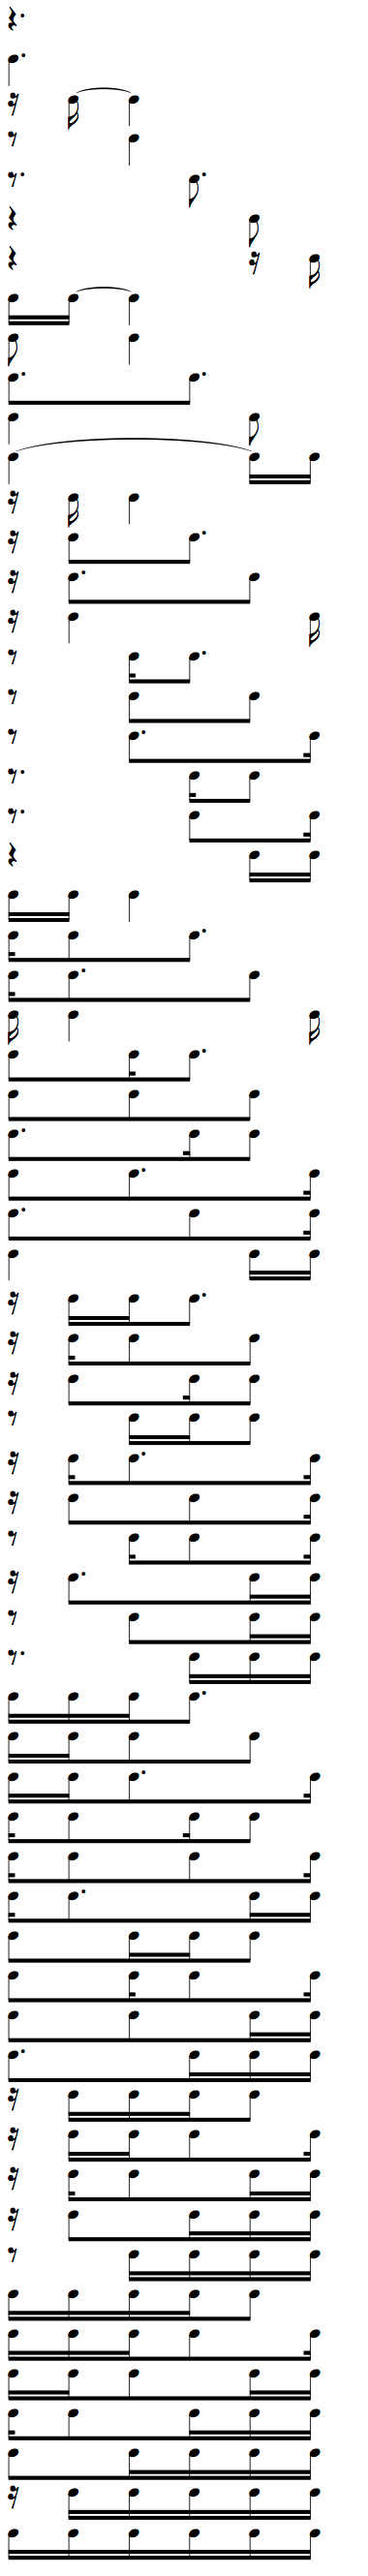 Complete Rhythms cheat sheet for Dotted Quarter Note with 16th Notes